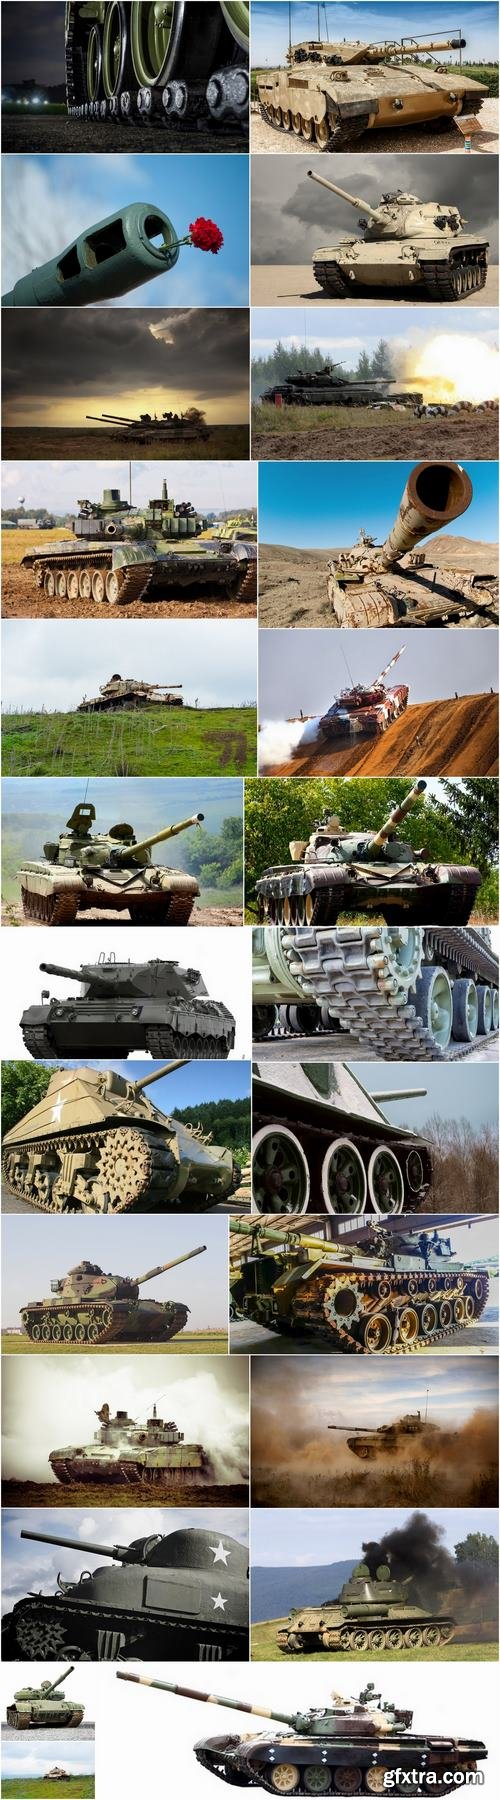 Tank armor cannon caterpillar drive 25 HQ Jpeg